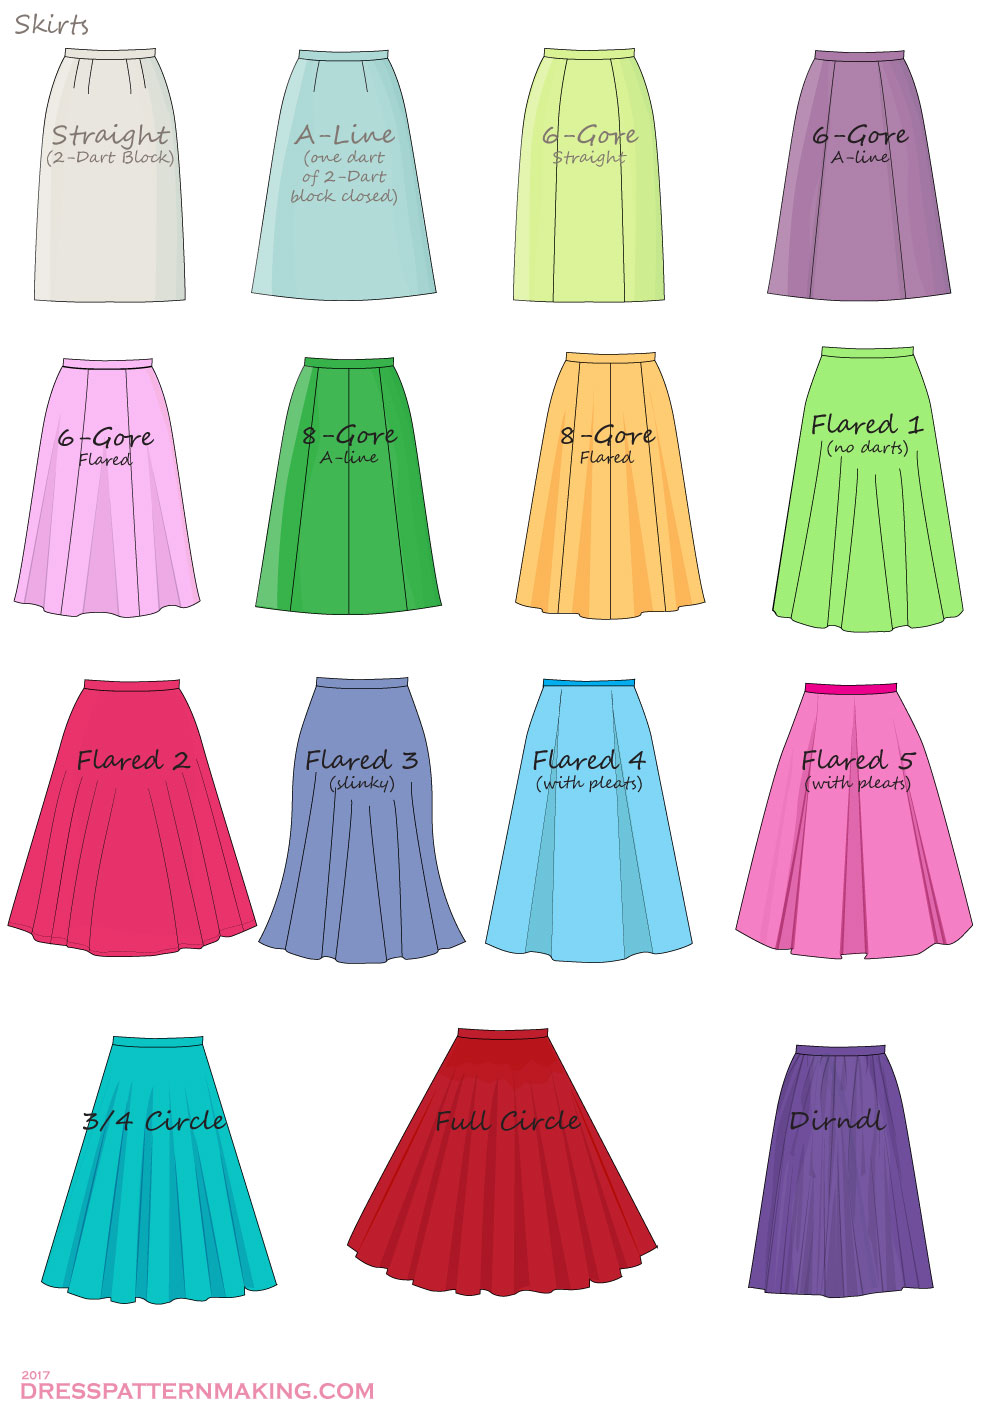 skirts examples